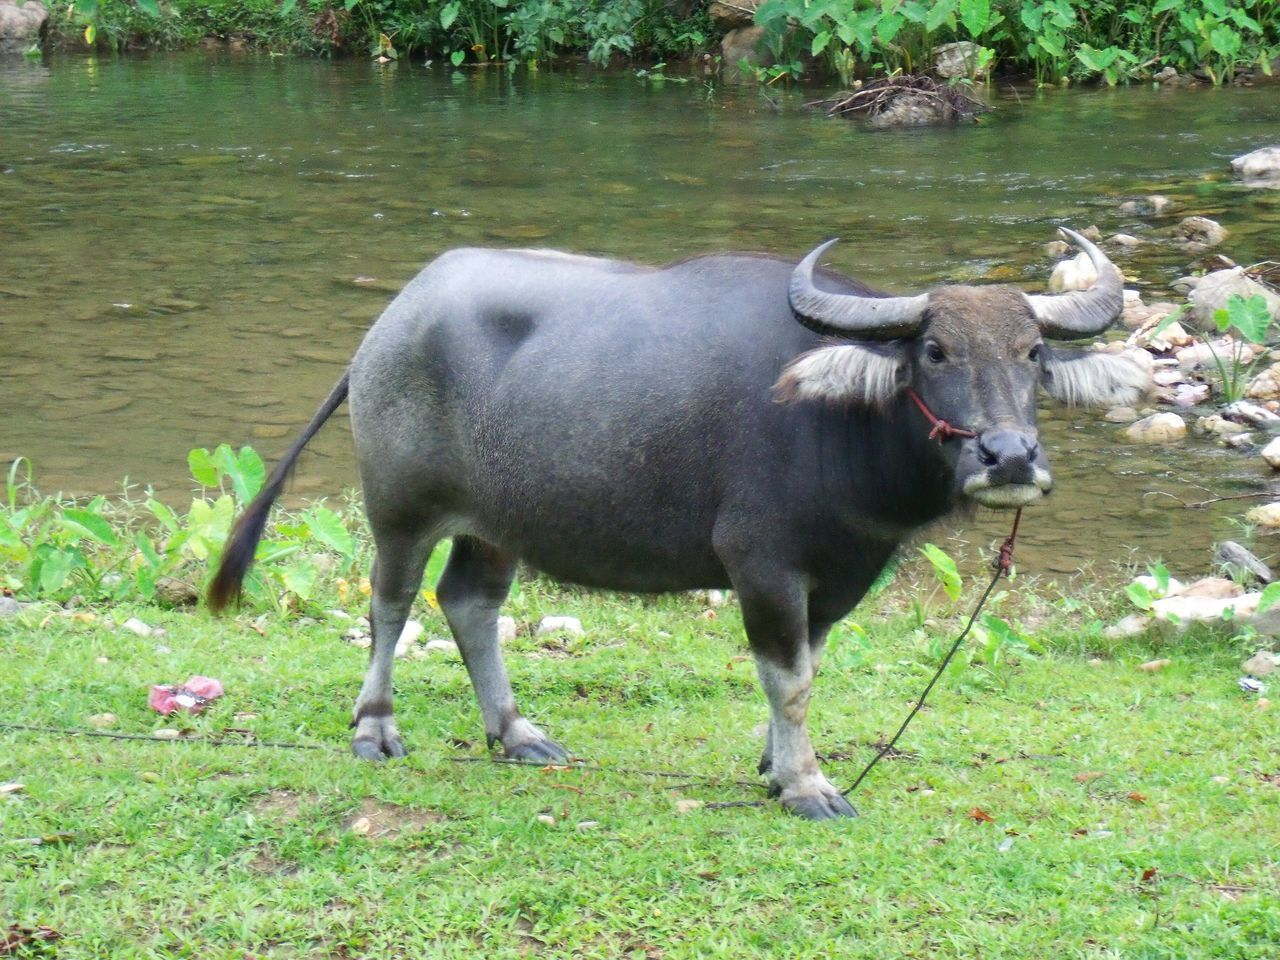 Black buffalo in nature Grass Domestic Animals Animal Themes One Animal Field Mammal Outdoors Nature Water Buffalo Bovine Garden